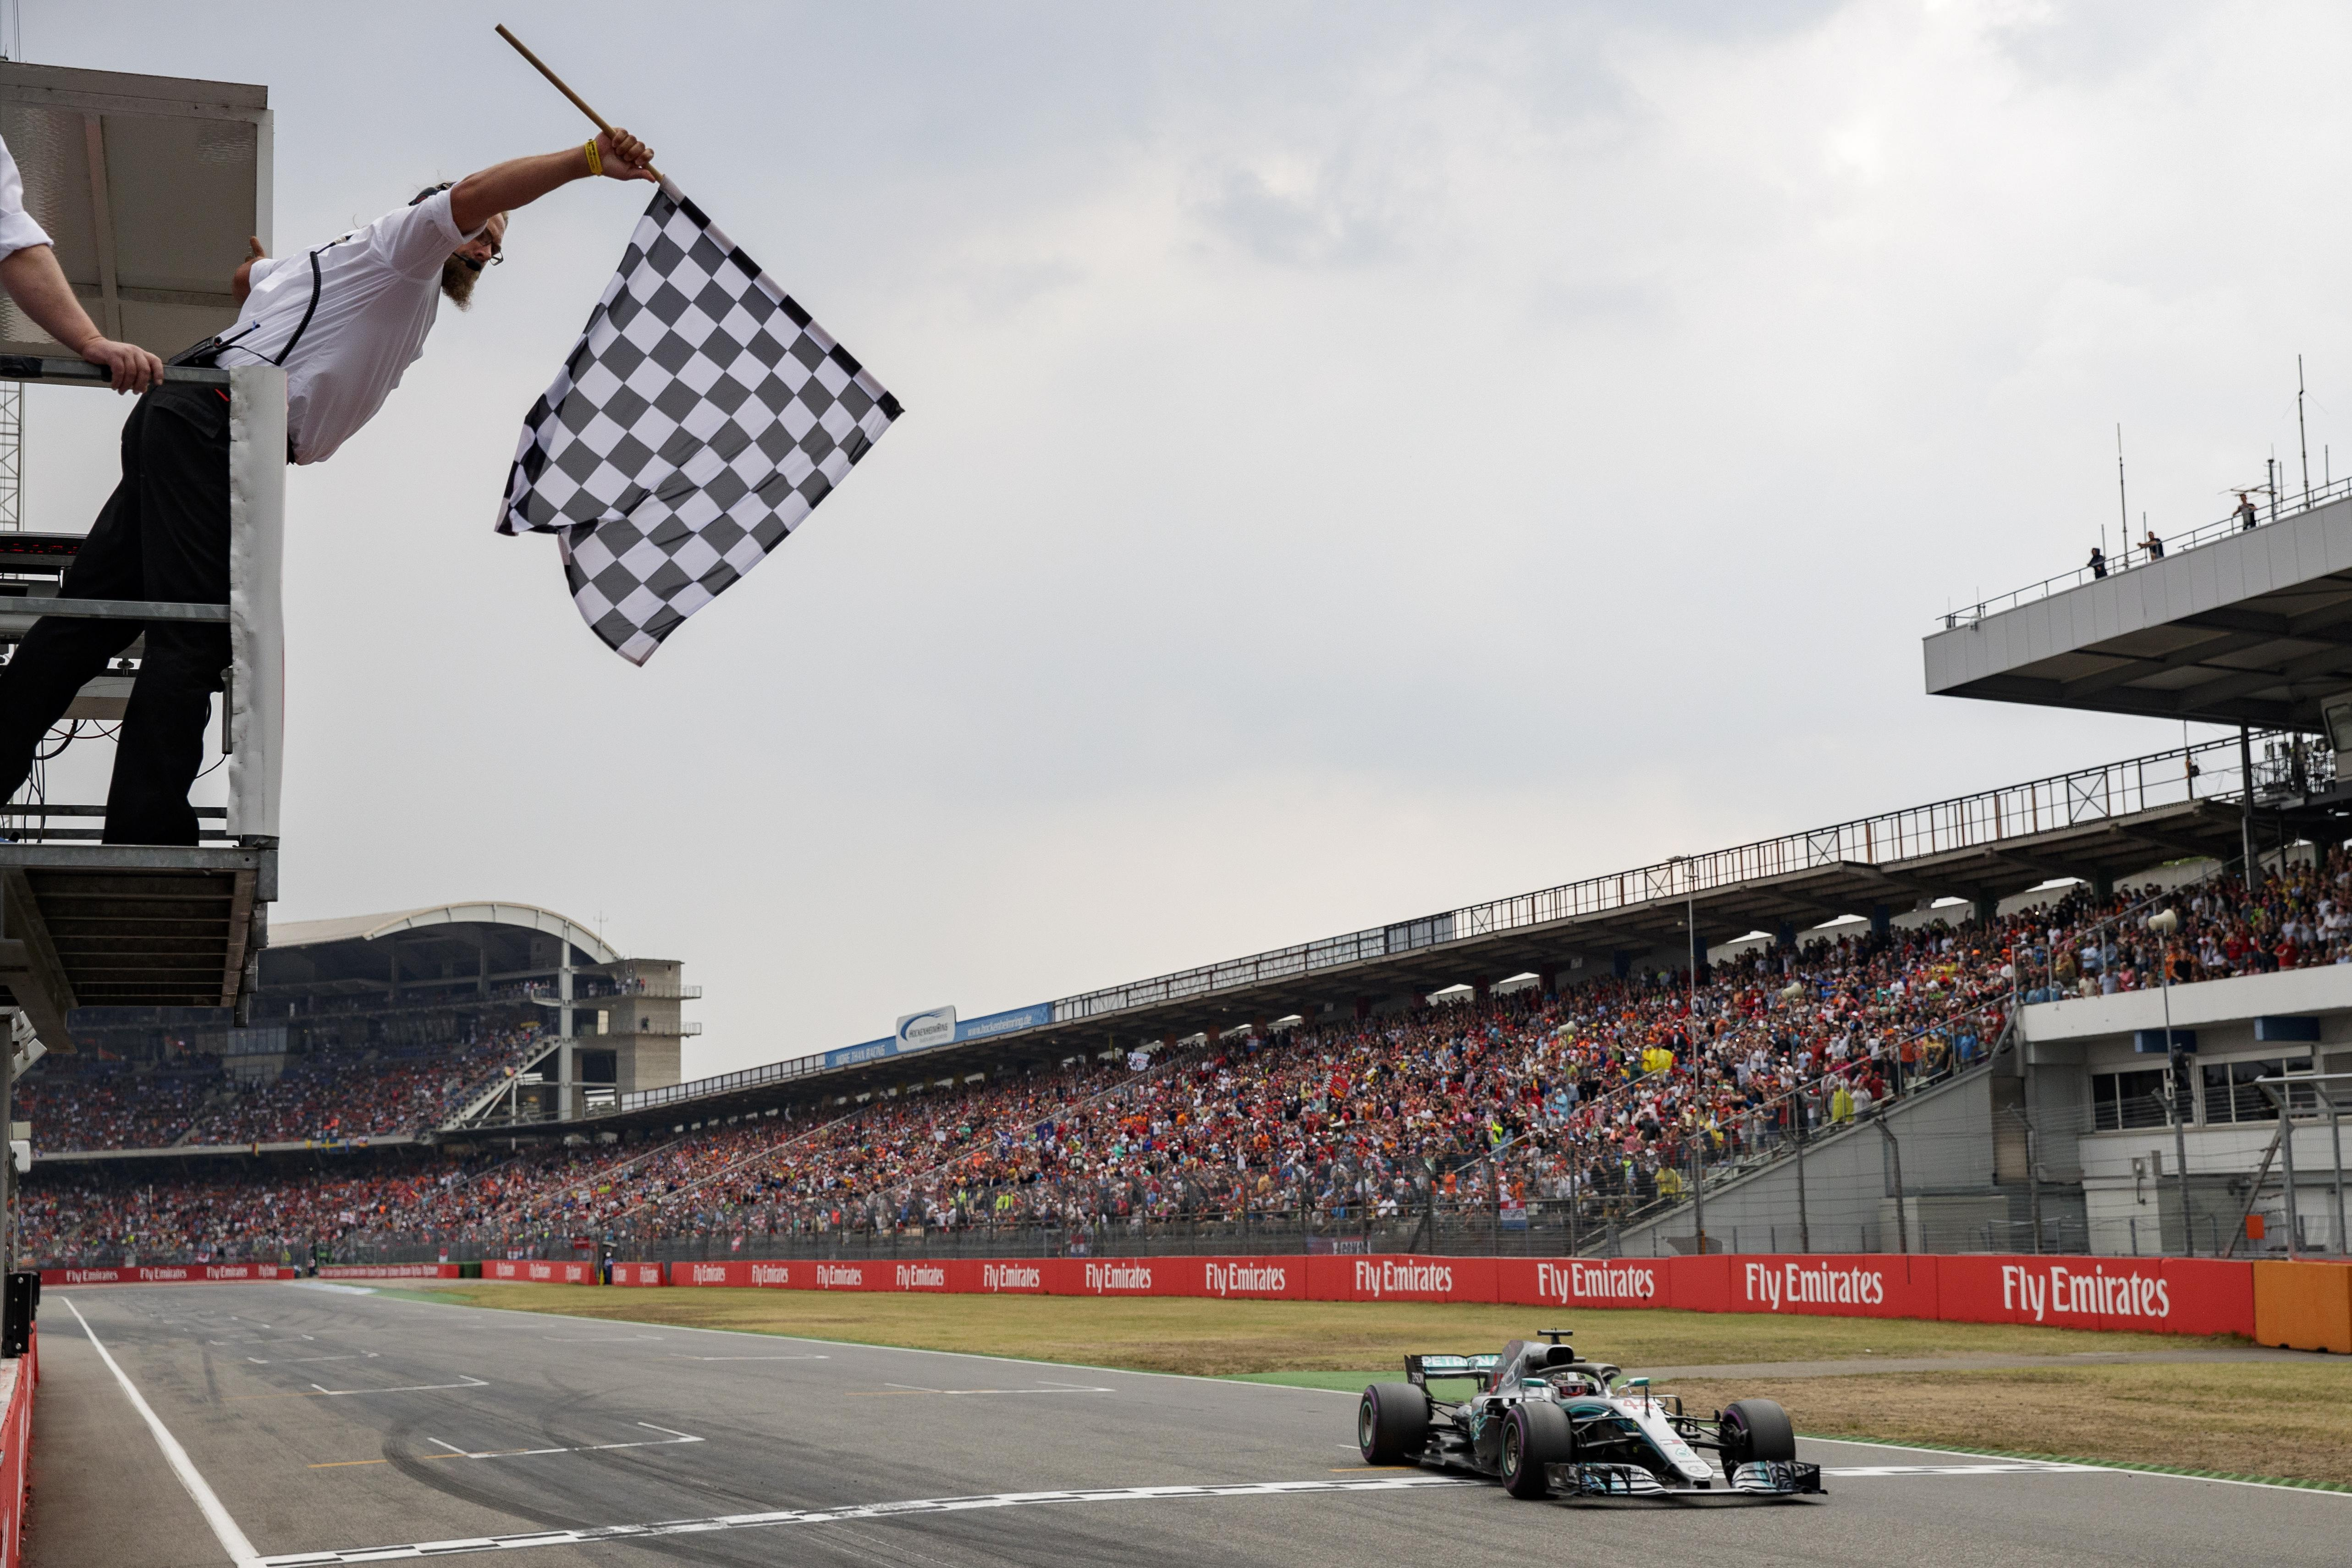 Hamilton crossed the line in first, having started the day in 14th